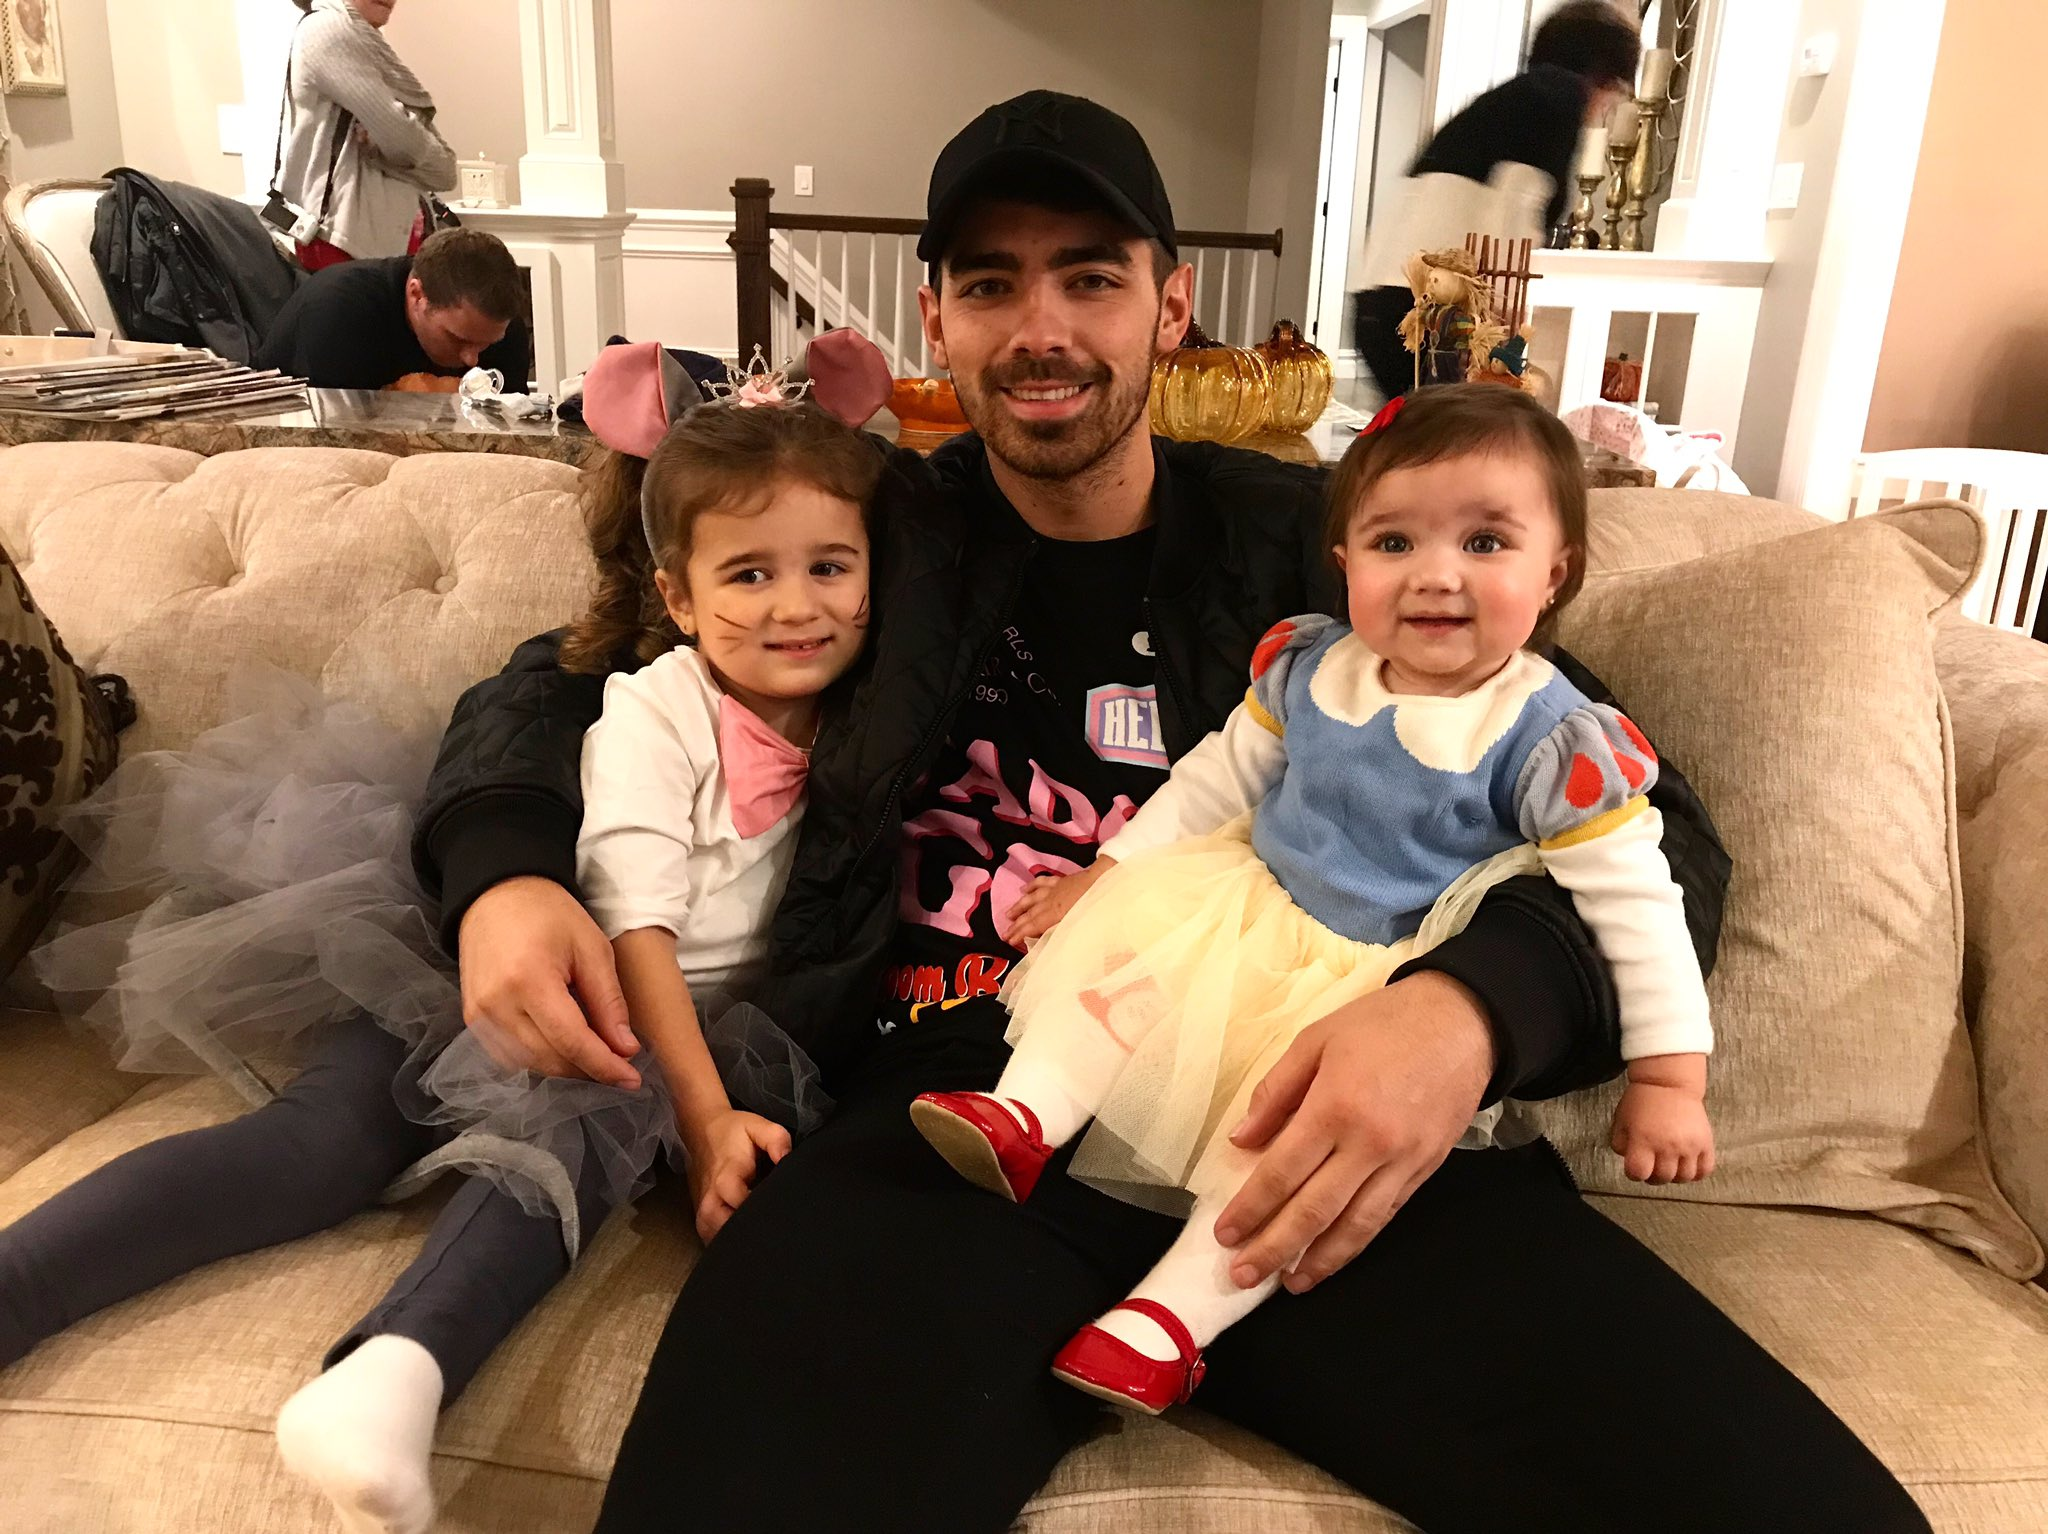 Great uncle Halloween day with the nieces ���� https://t.co/qxE6M2oTXJ